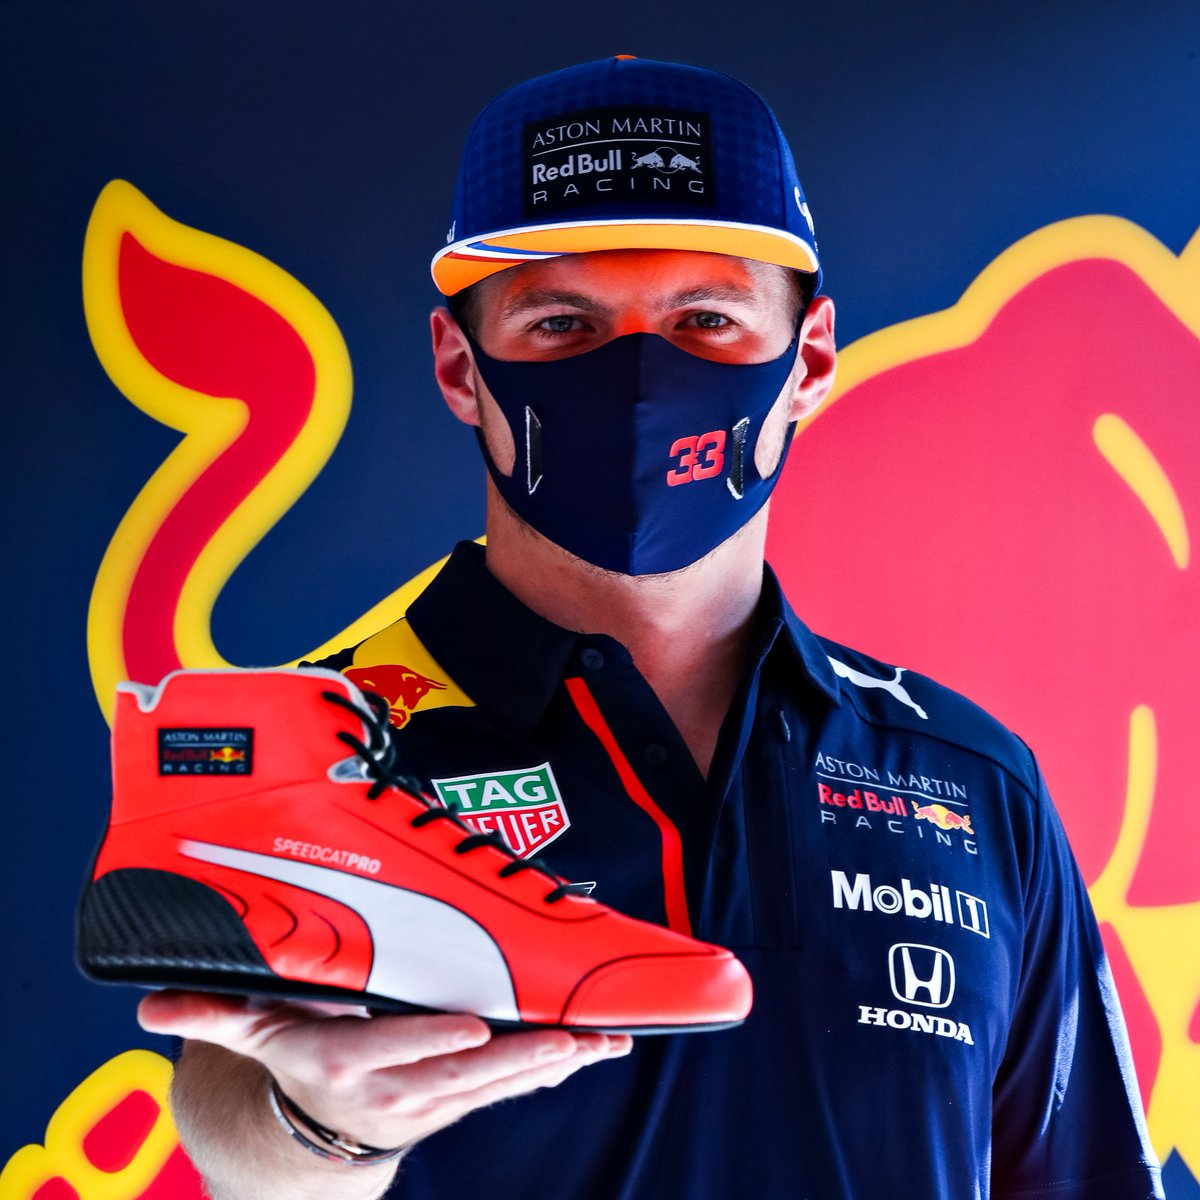 Right then Max fans 👀  If you've ever thought Verstappen's race boots looked awesome, then good news!  The @pumamotorsport SpeedCat Pro shoes Max wears in F1 have now launched on the Puma store 🎉 https://t.co/Yz4E6ezcyC